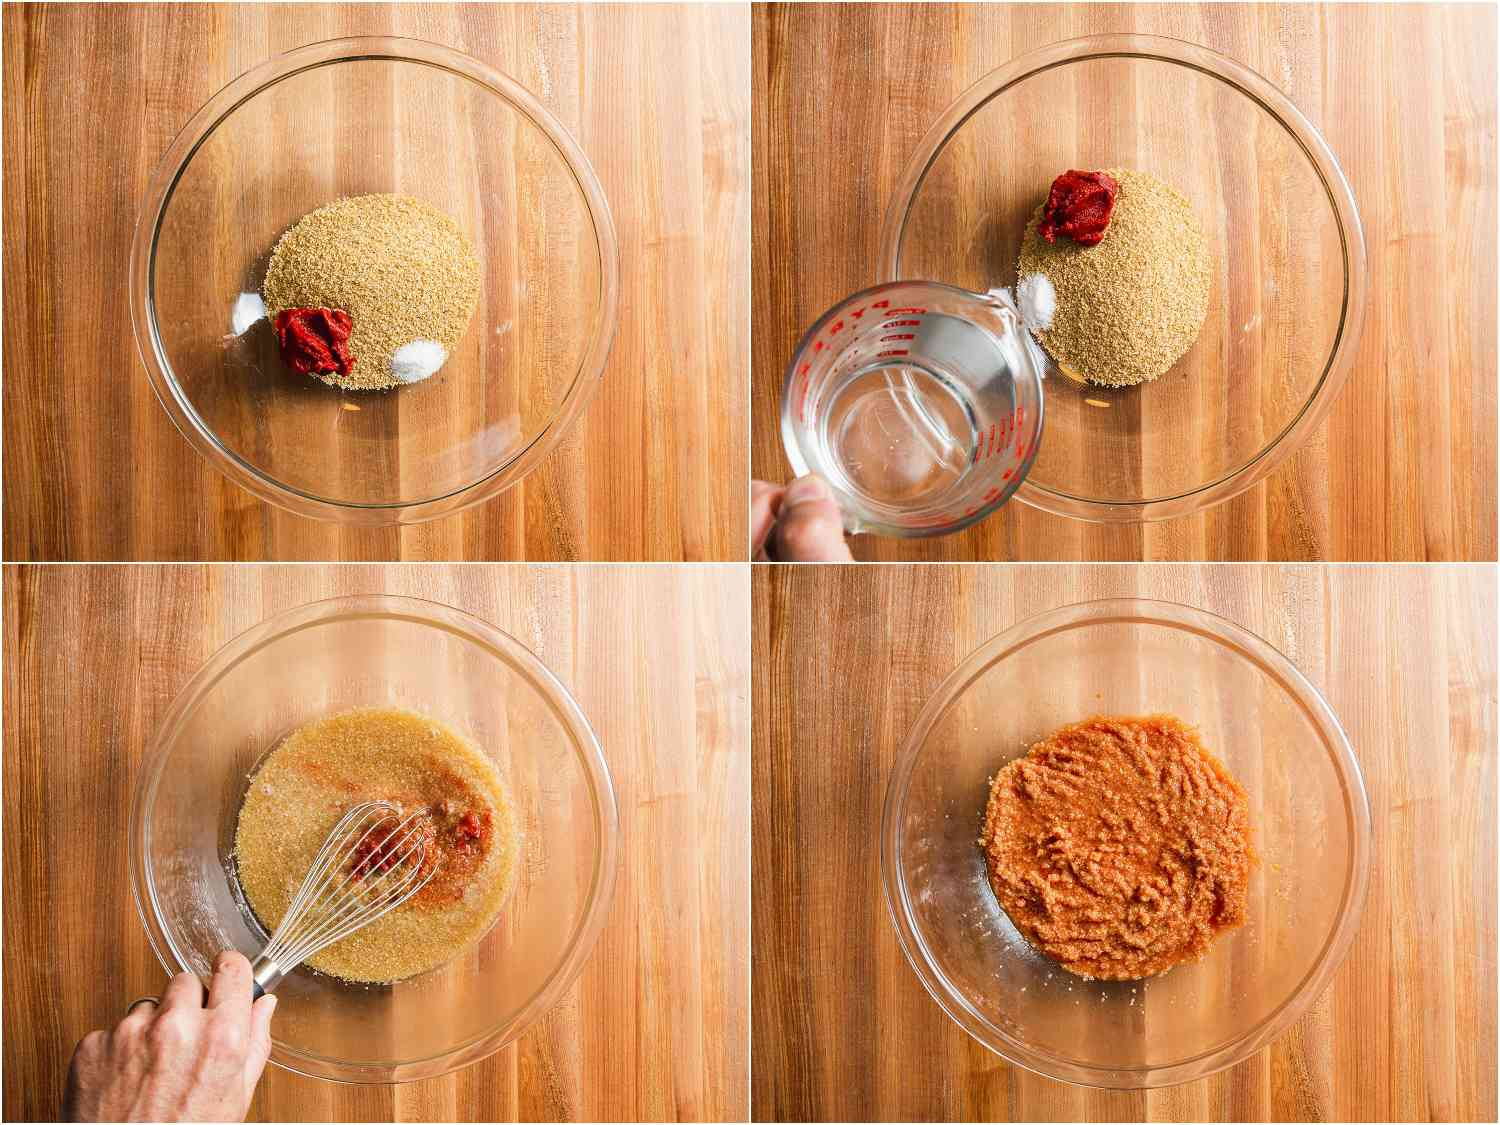 Hydrating bulgur with hot water and tomato paste